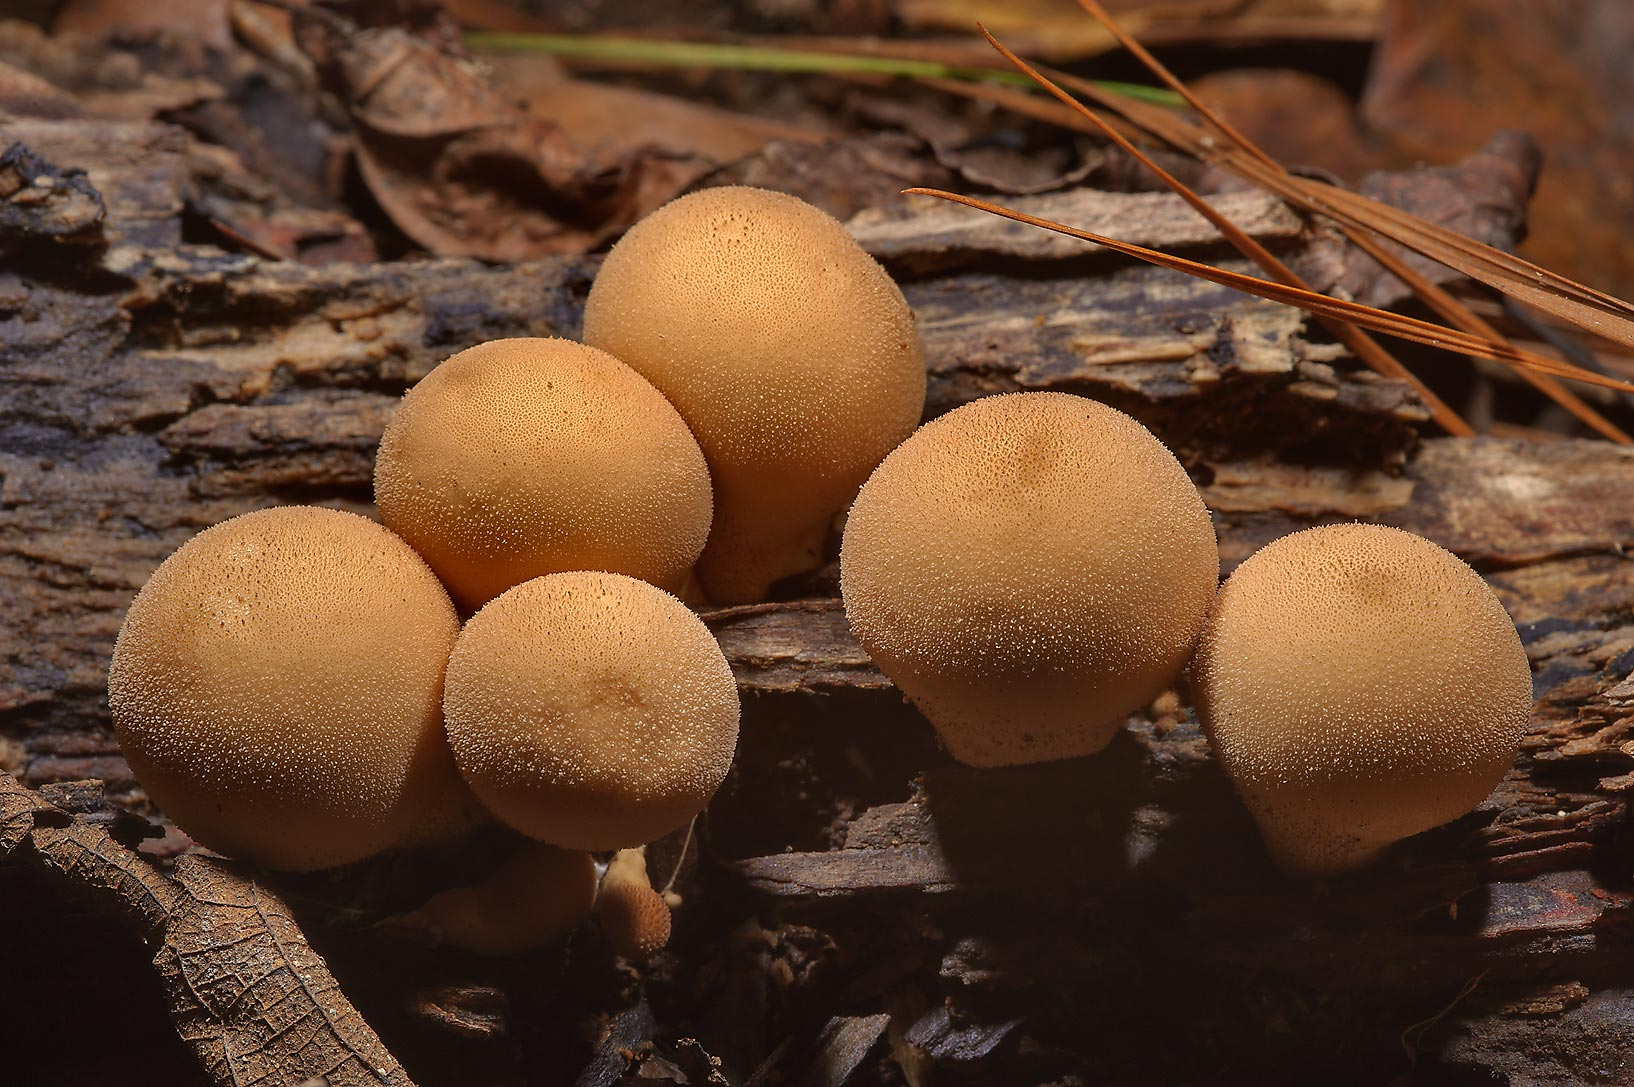 Pear-shaped stump puffball mushrooms (Lycoperdon...National Preserve. Warren, Texas